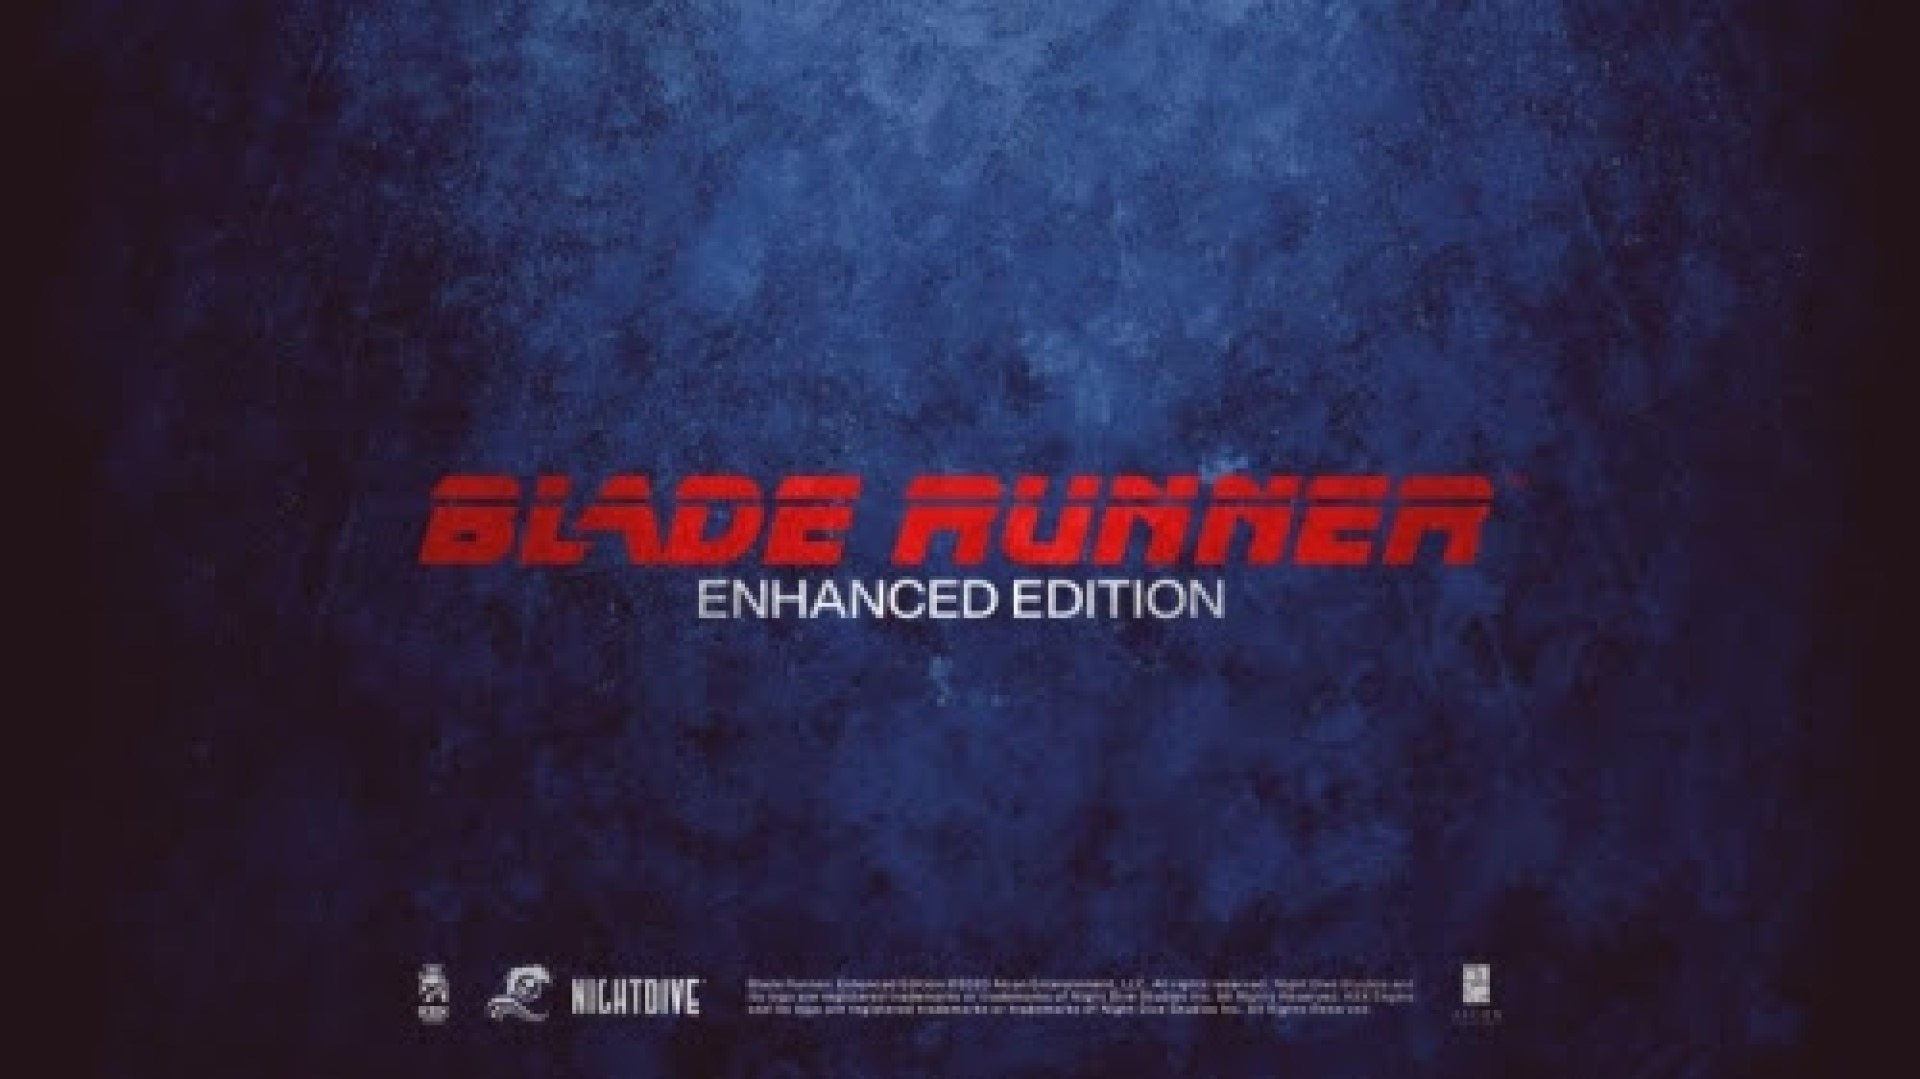 blade runner - REMASTER EXPERTS NIGHTDIVE STUDIOS TO RELEASE BLADE RUNNER: ENHANCED EDITION